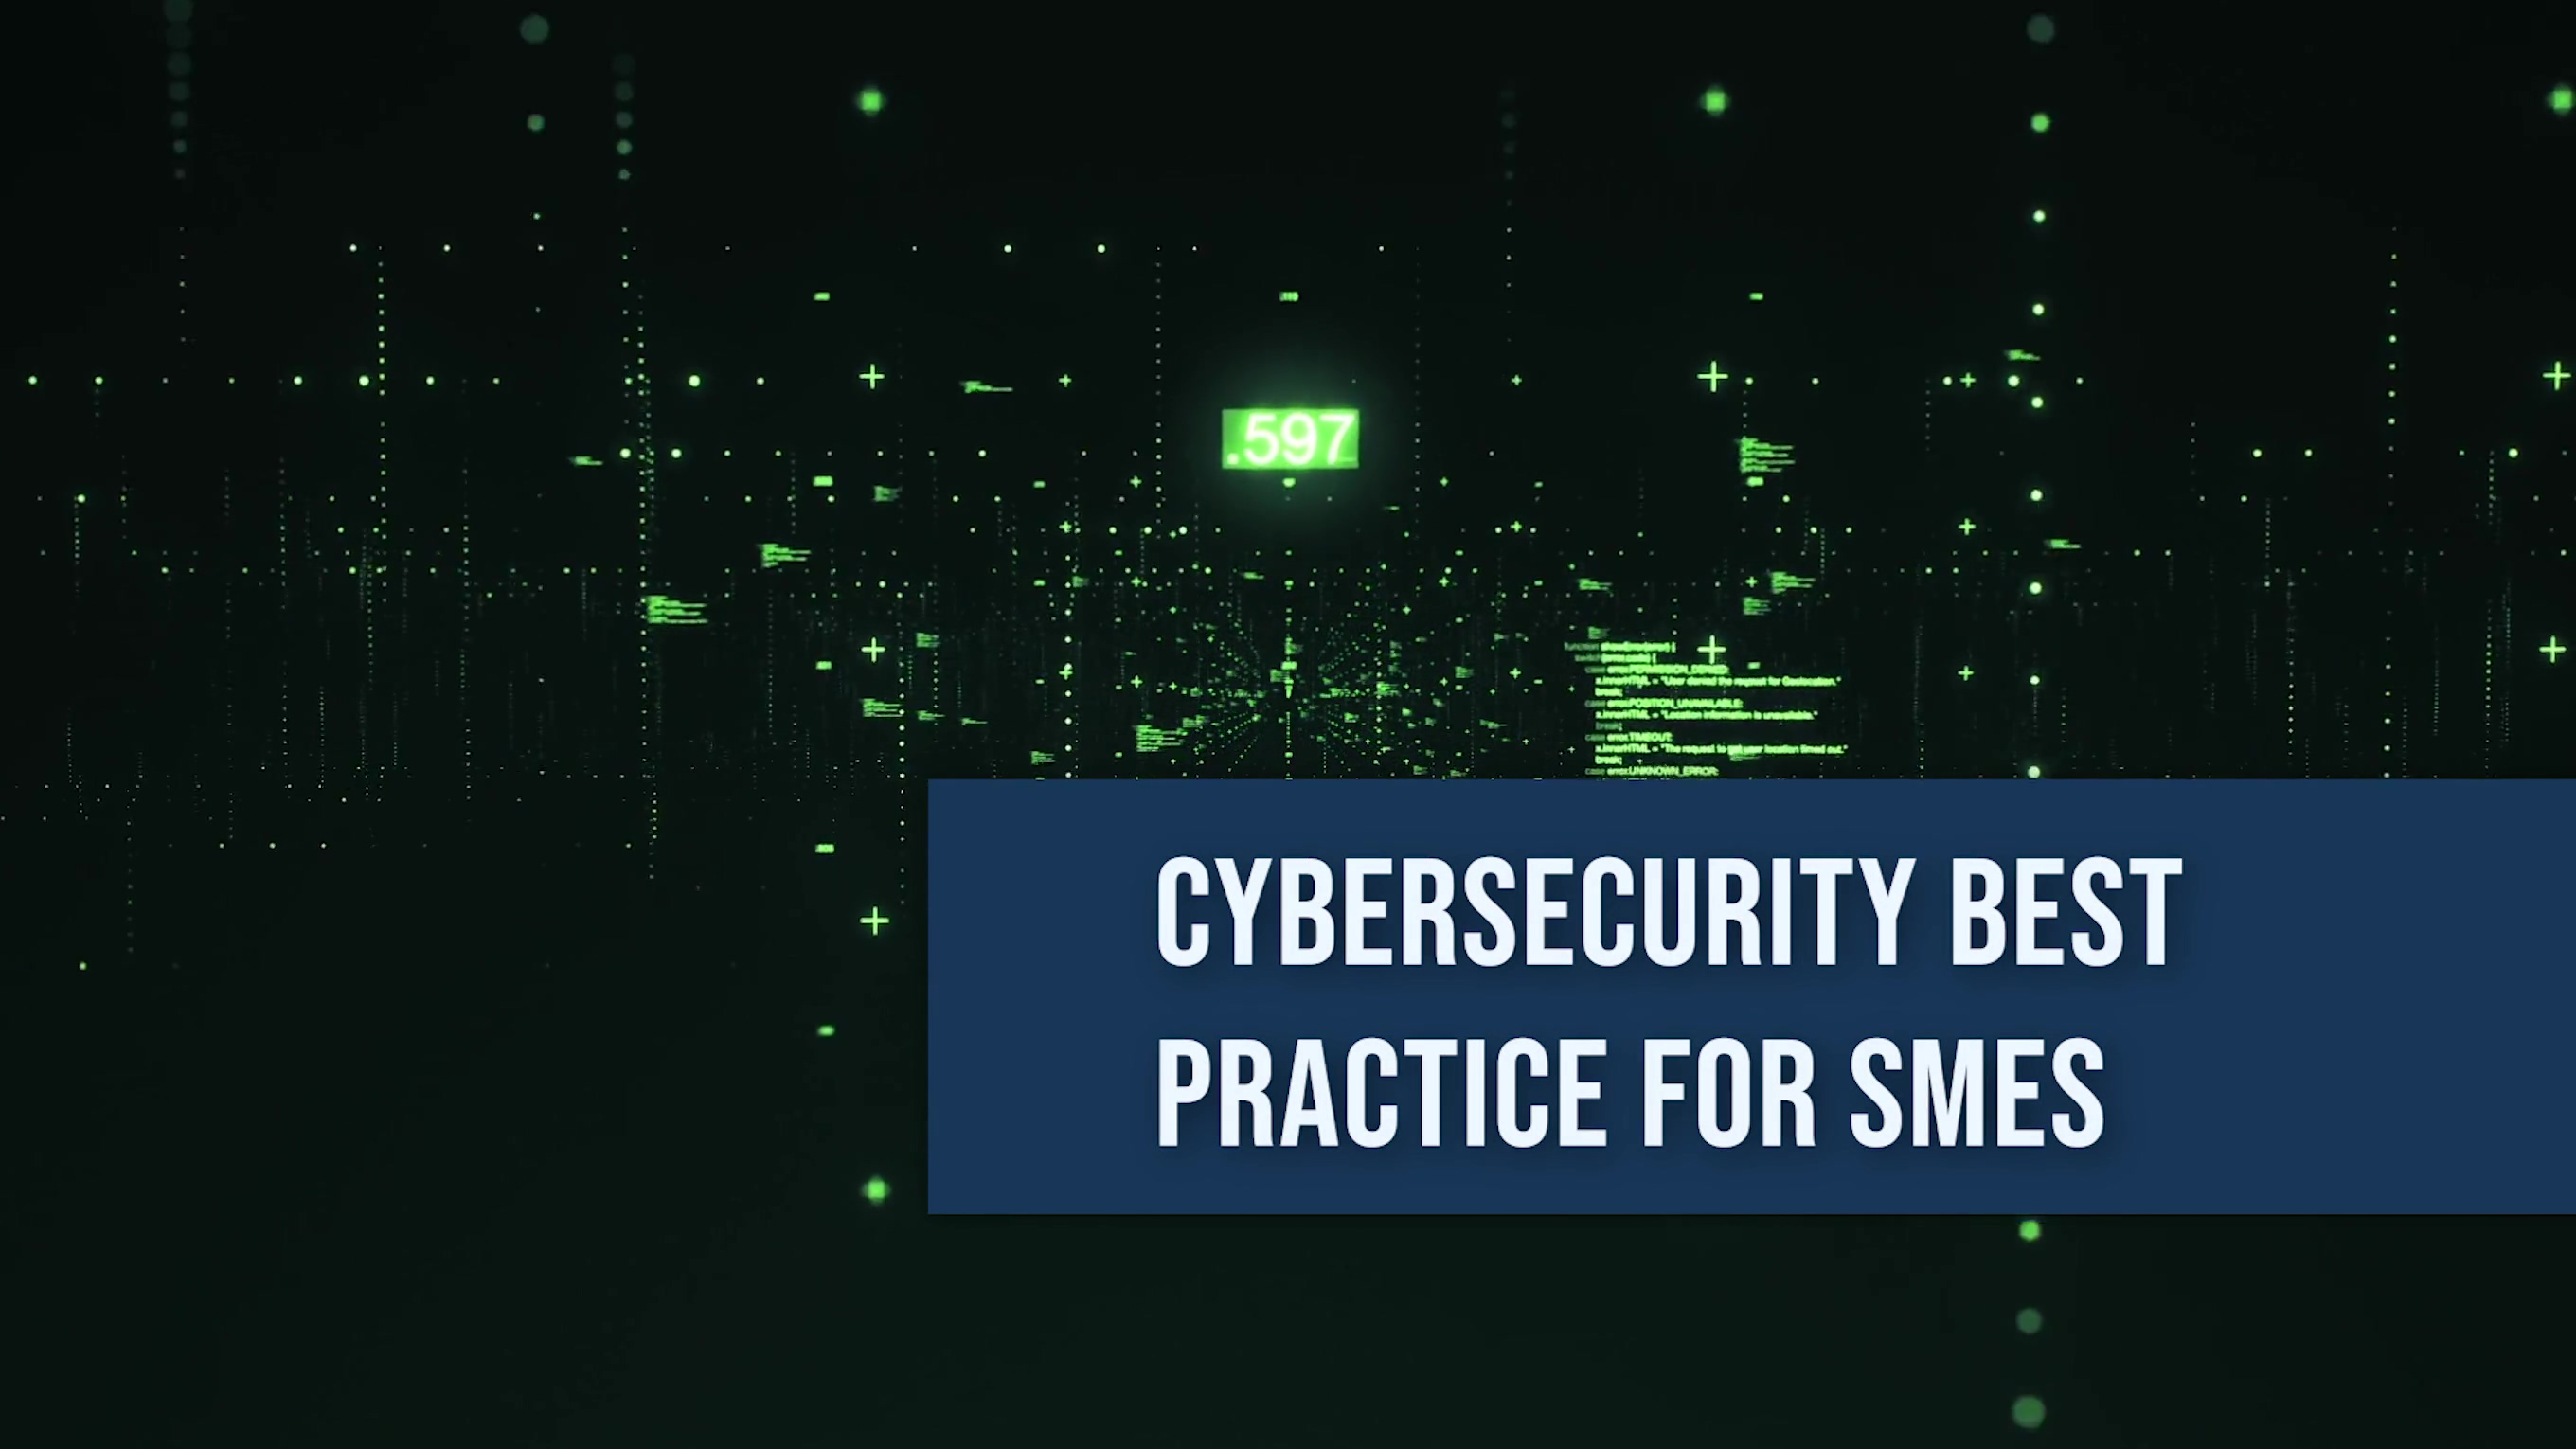 Cybersecurity best practice for SMEs